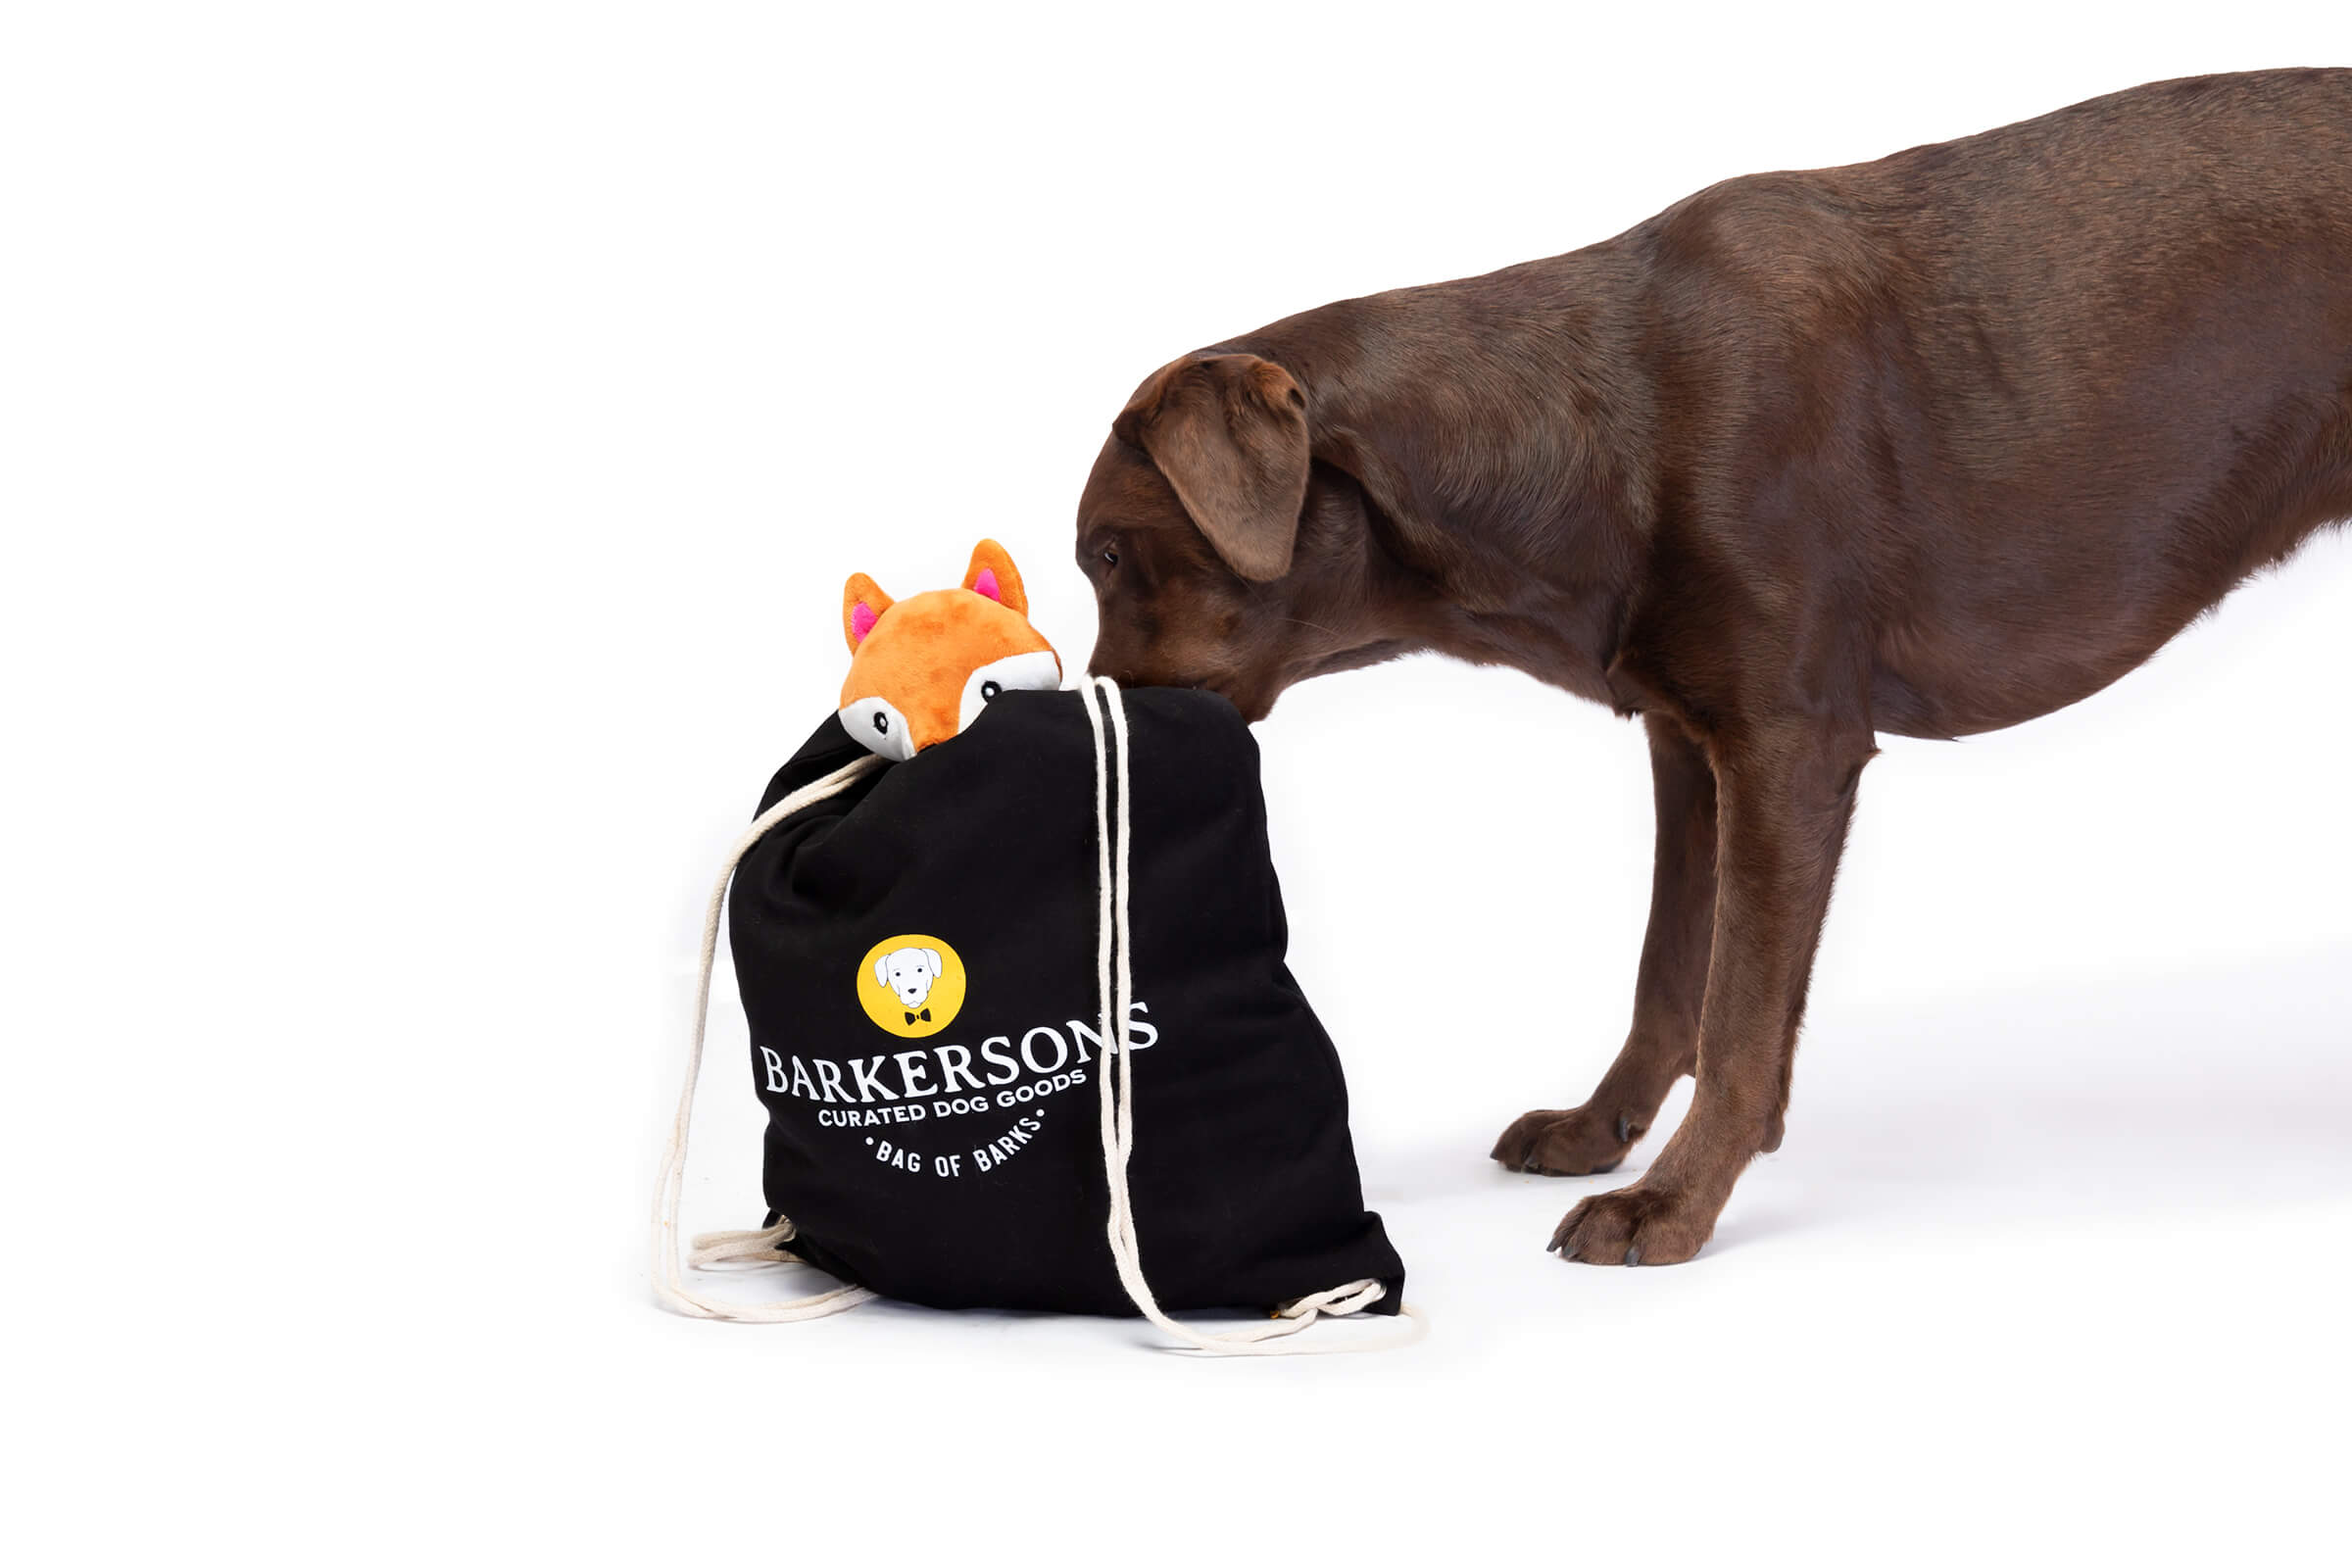 brown lab poking nose in dog subscription toy bag